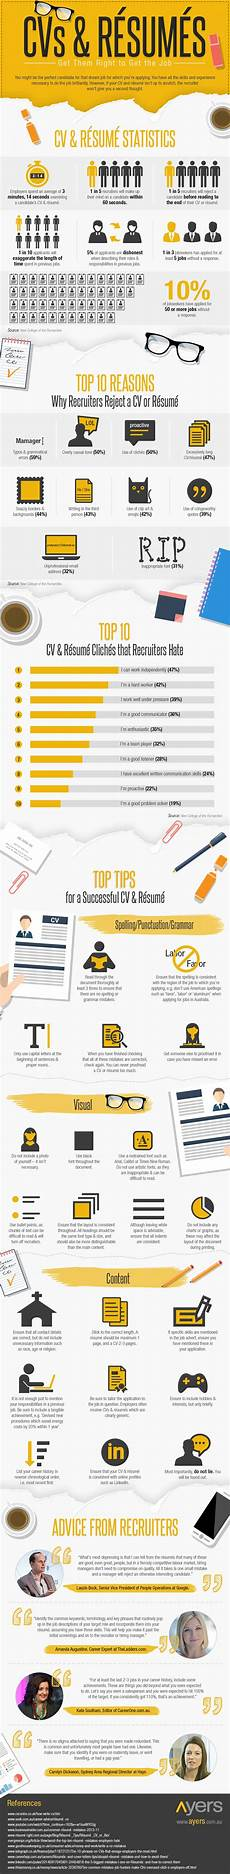 Visual Cvs Cvs Amp R 233 Sum 233 S Get Them Right To Get The Job Infographic